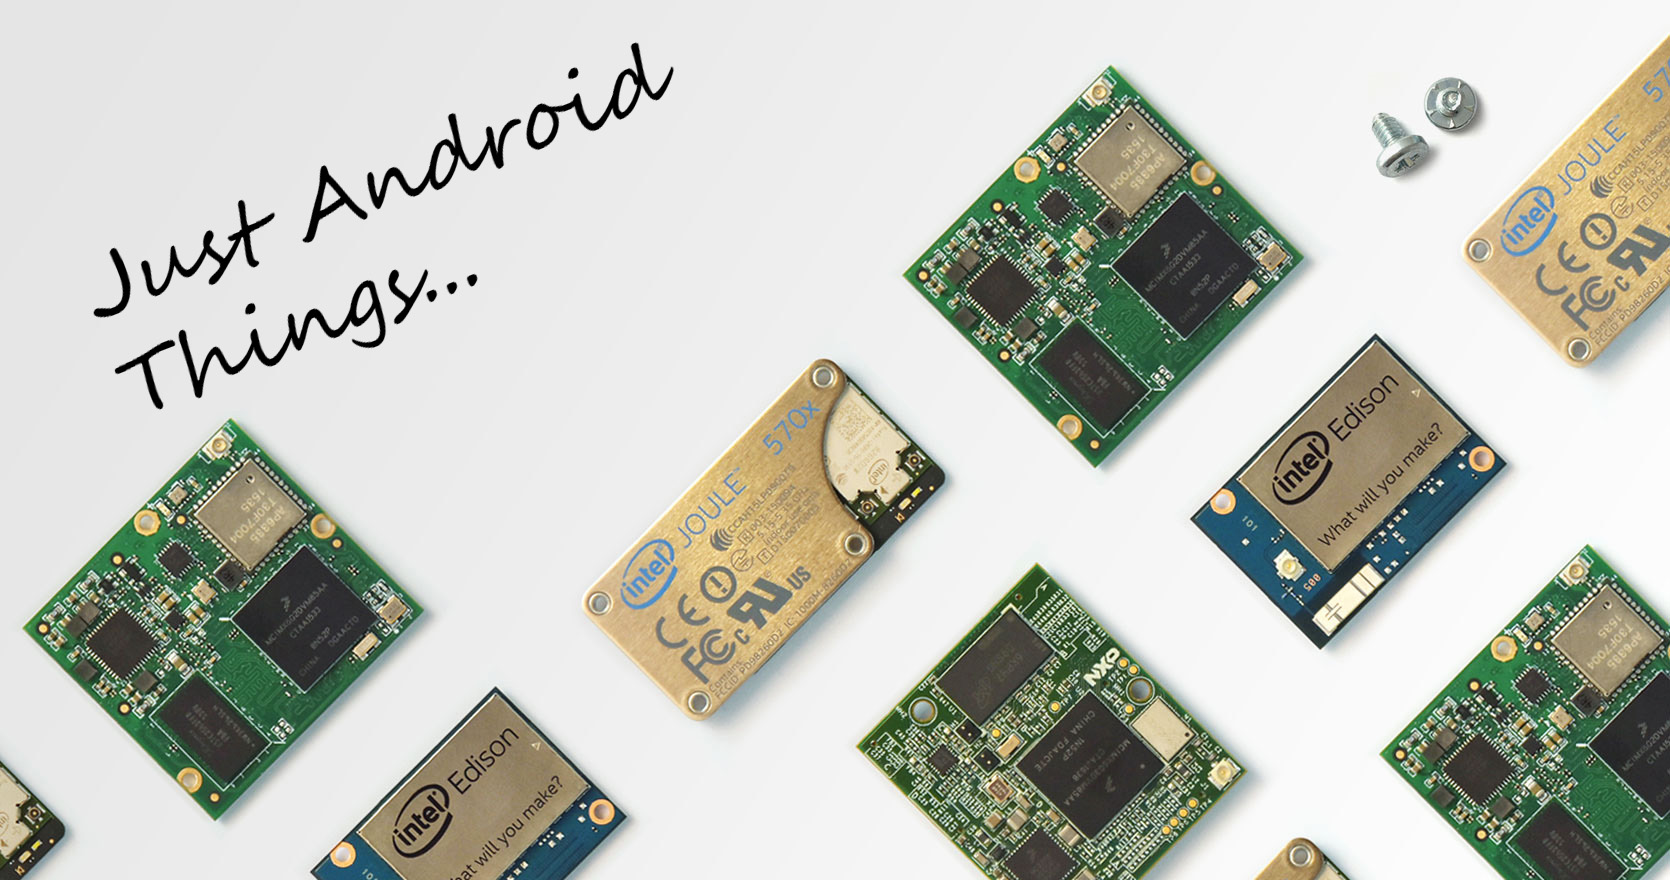 Qualcomm and Rockchip announce new platforms for Android